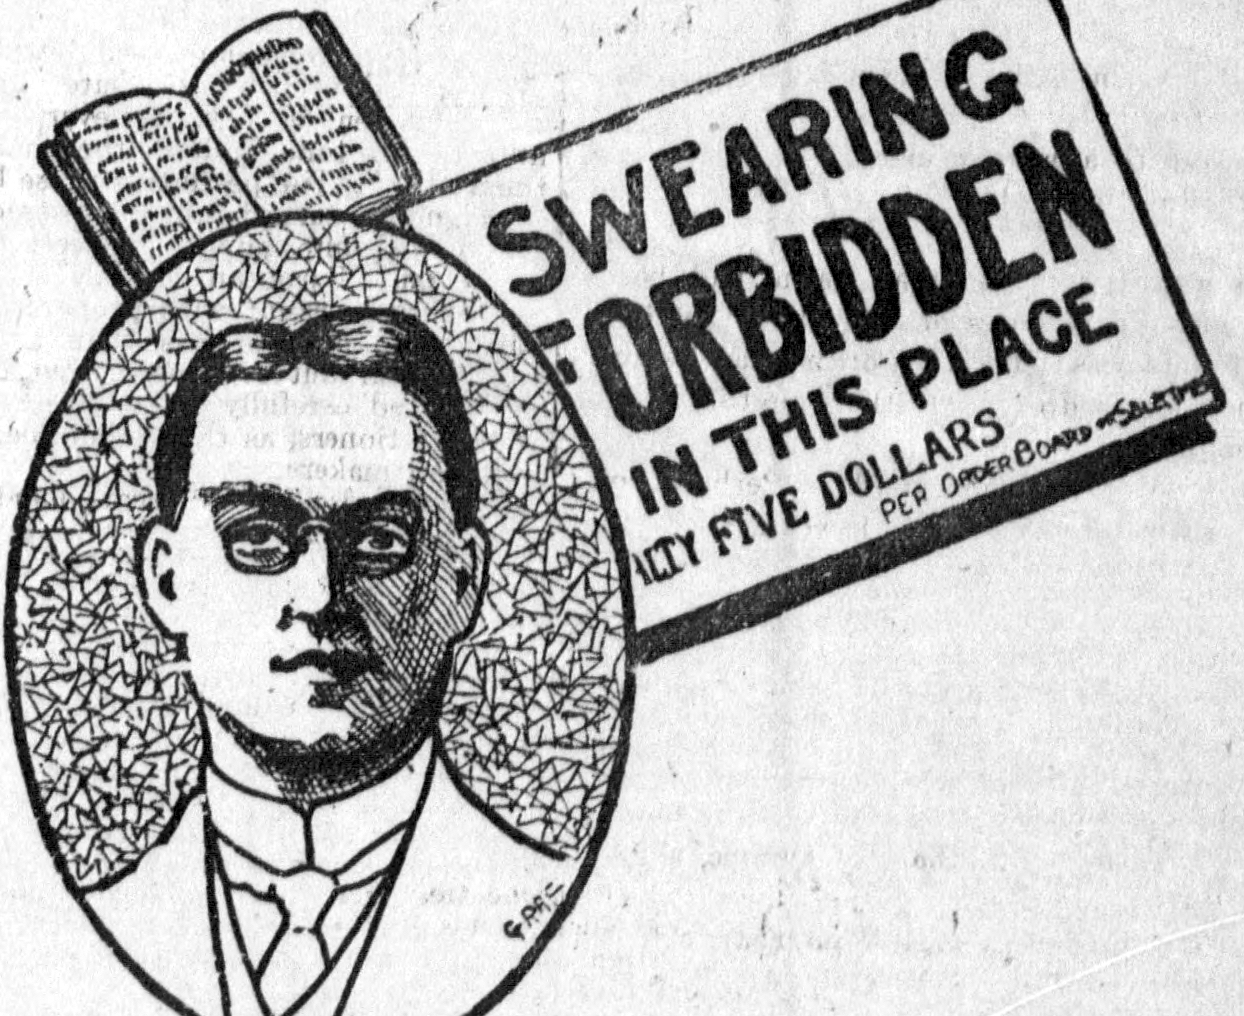 In 1904, Roland D. Sawyer launched a crusade against obscenity.